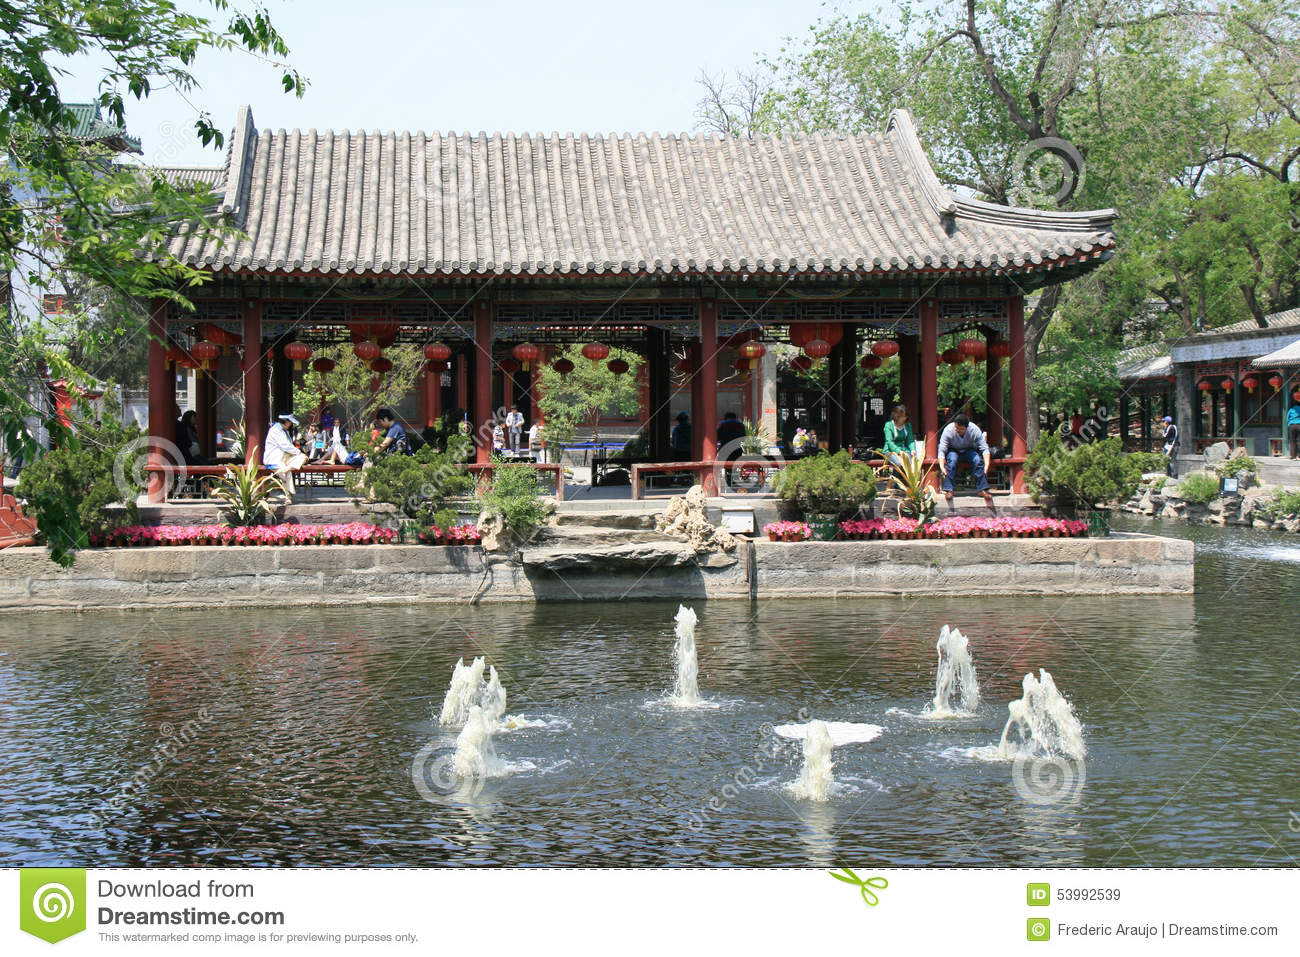 Pavilion - Prince Gong Mansion - Beijing - China (4)